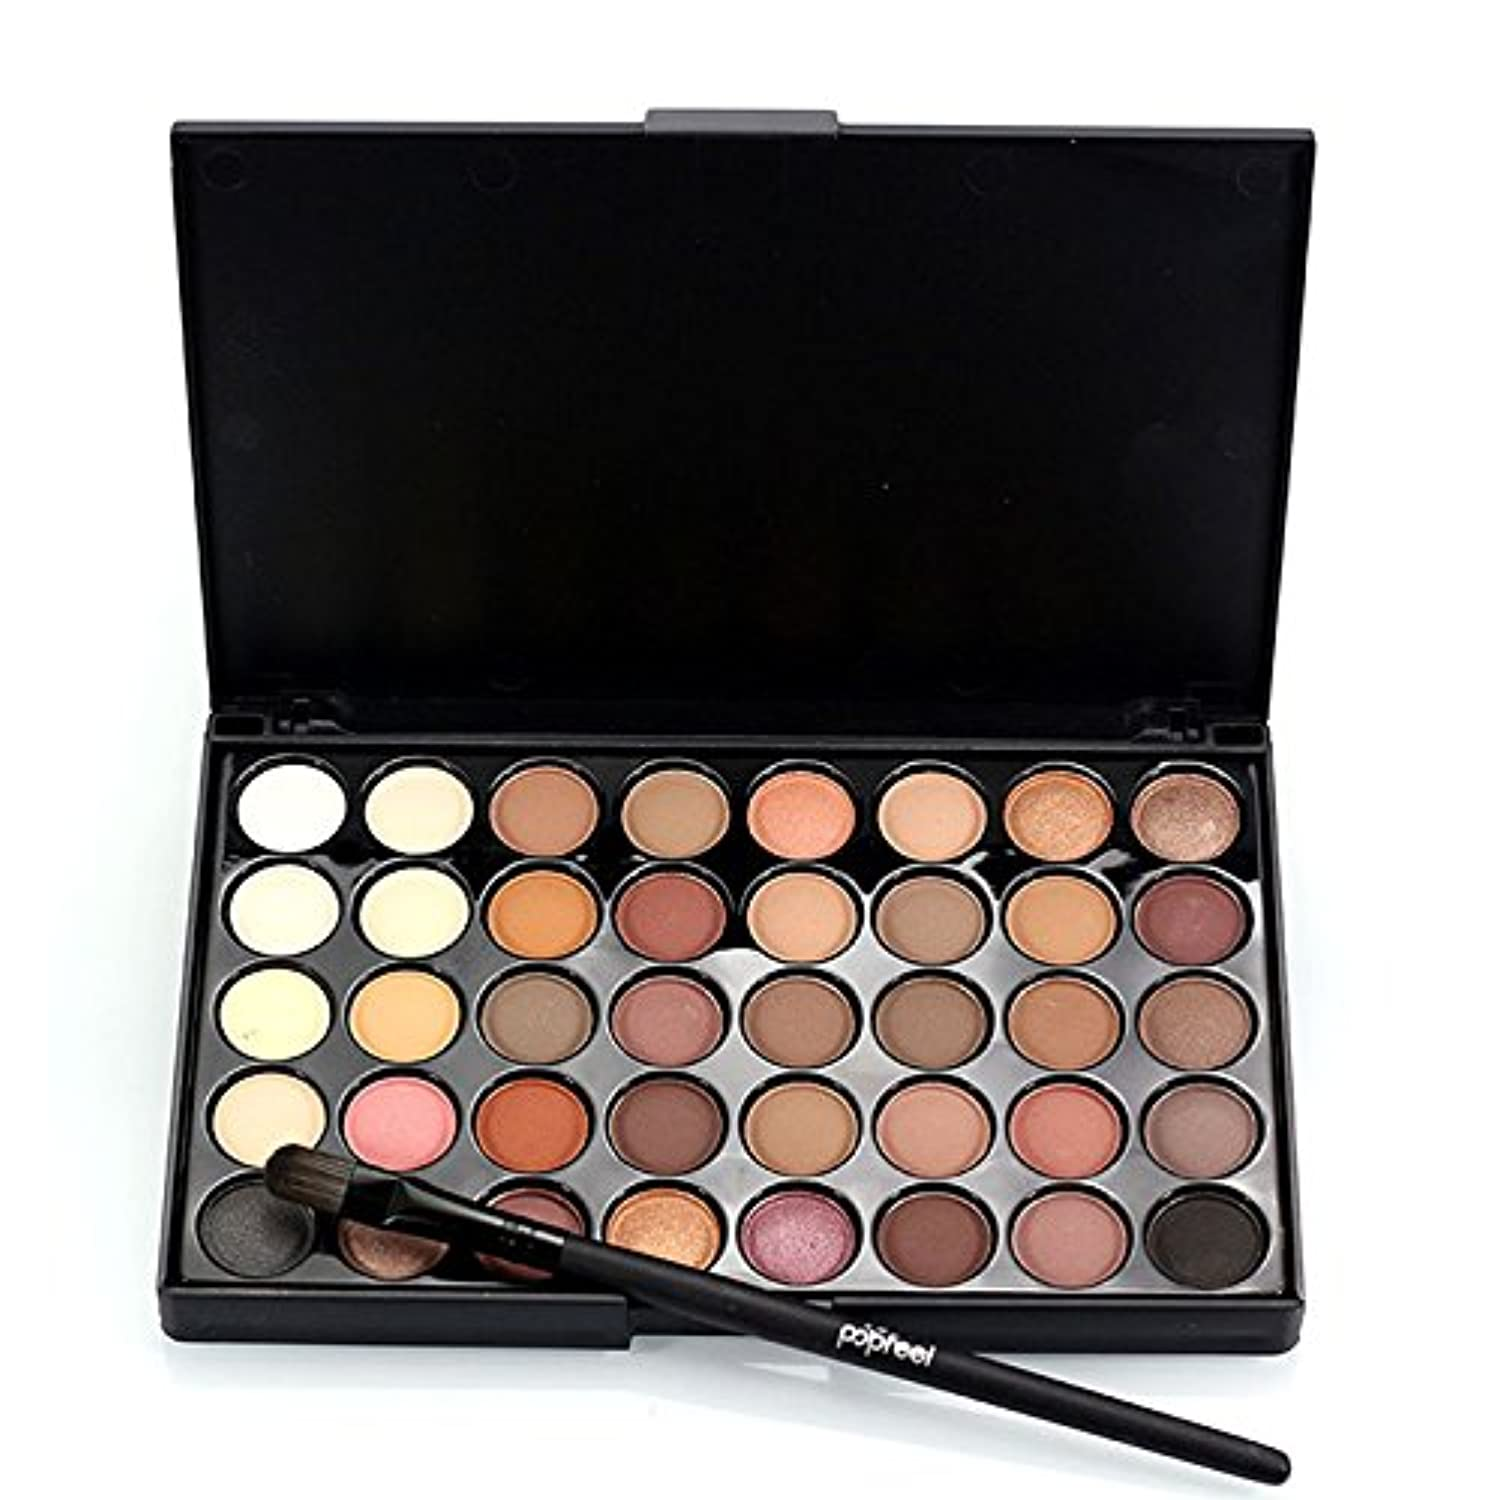 1pcs Eyes Brush Eye Shadow Makeup Brushes + 40 Colors Eyeshadow Palette Natural Face Matte Camouflage Cosmetic...